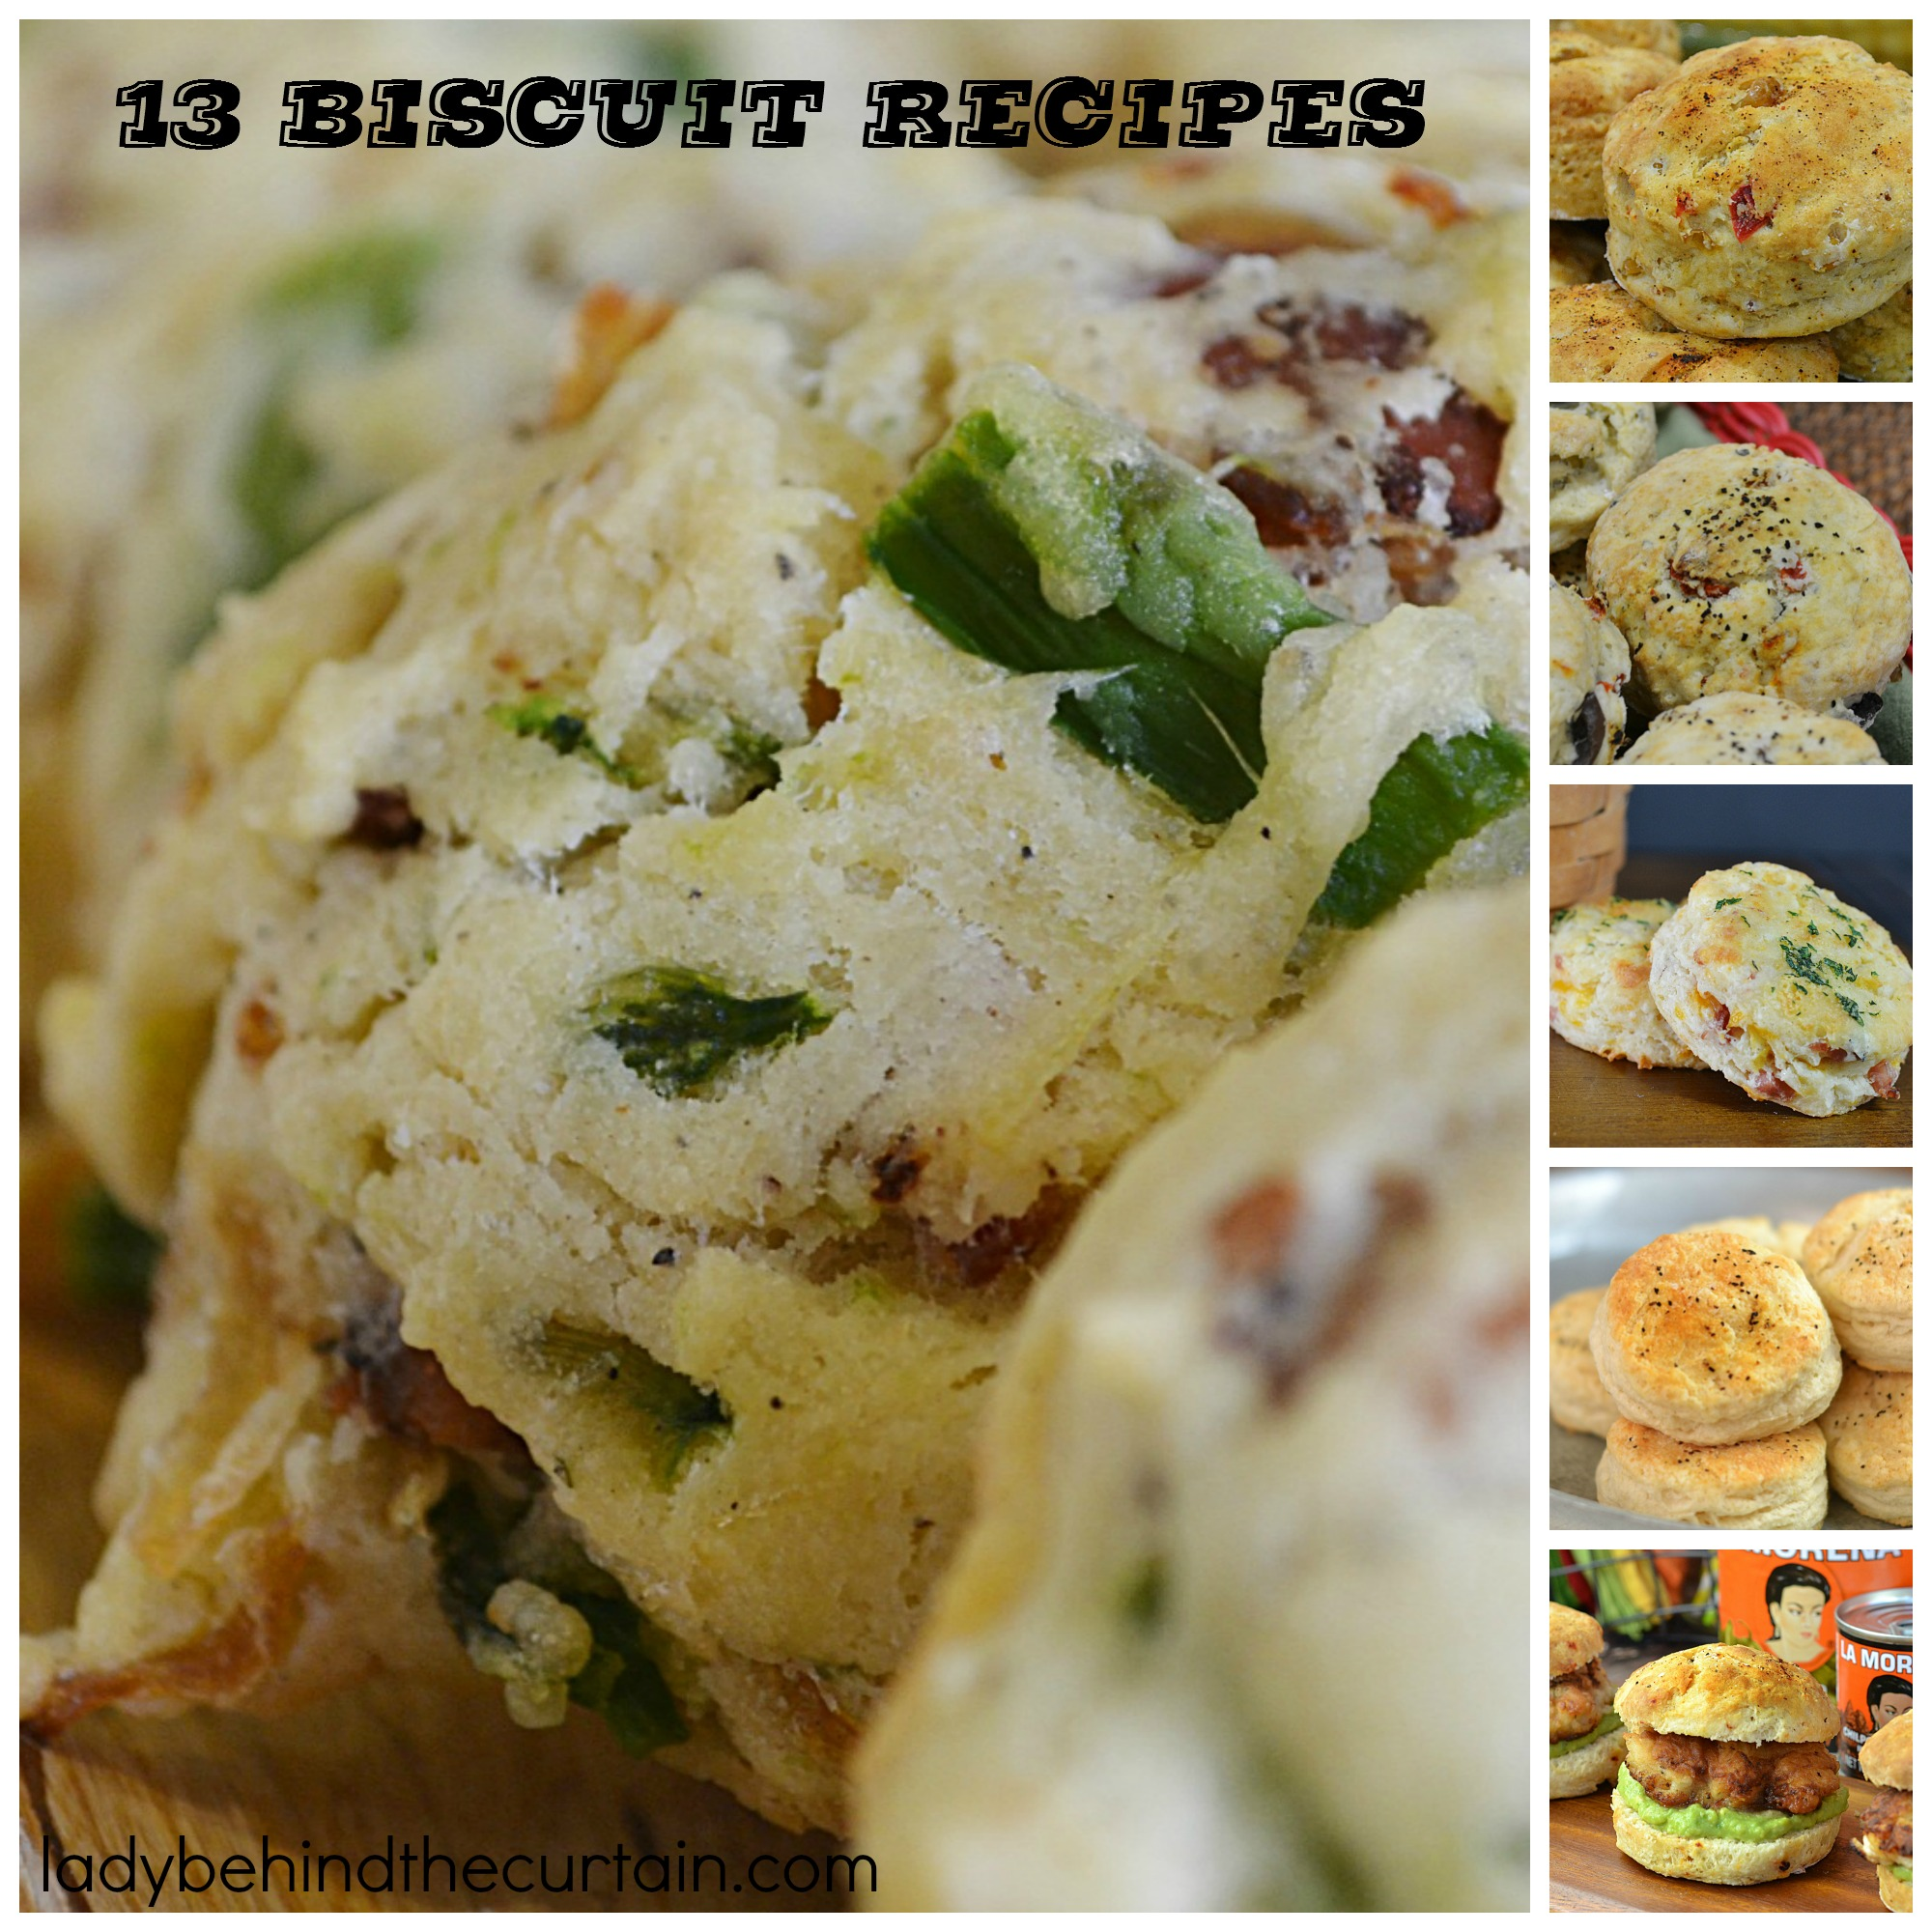 13 Biscuit Recipes | Breakfast, lunch, dinner and even dessert! This round up has a biscuit recipe for any time of the day. From Italian, Chipotle Honey, Peach Cobbler and Pumpkin Spice just to name a few.